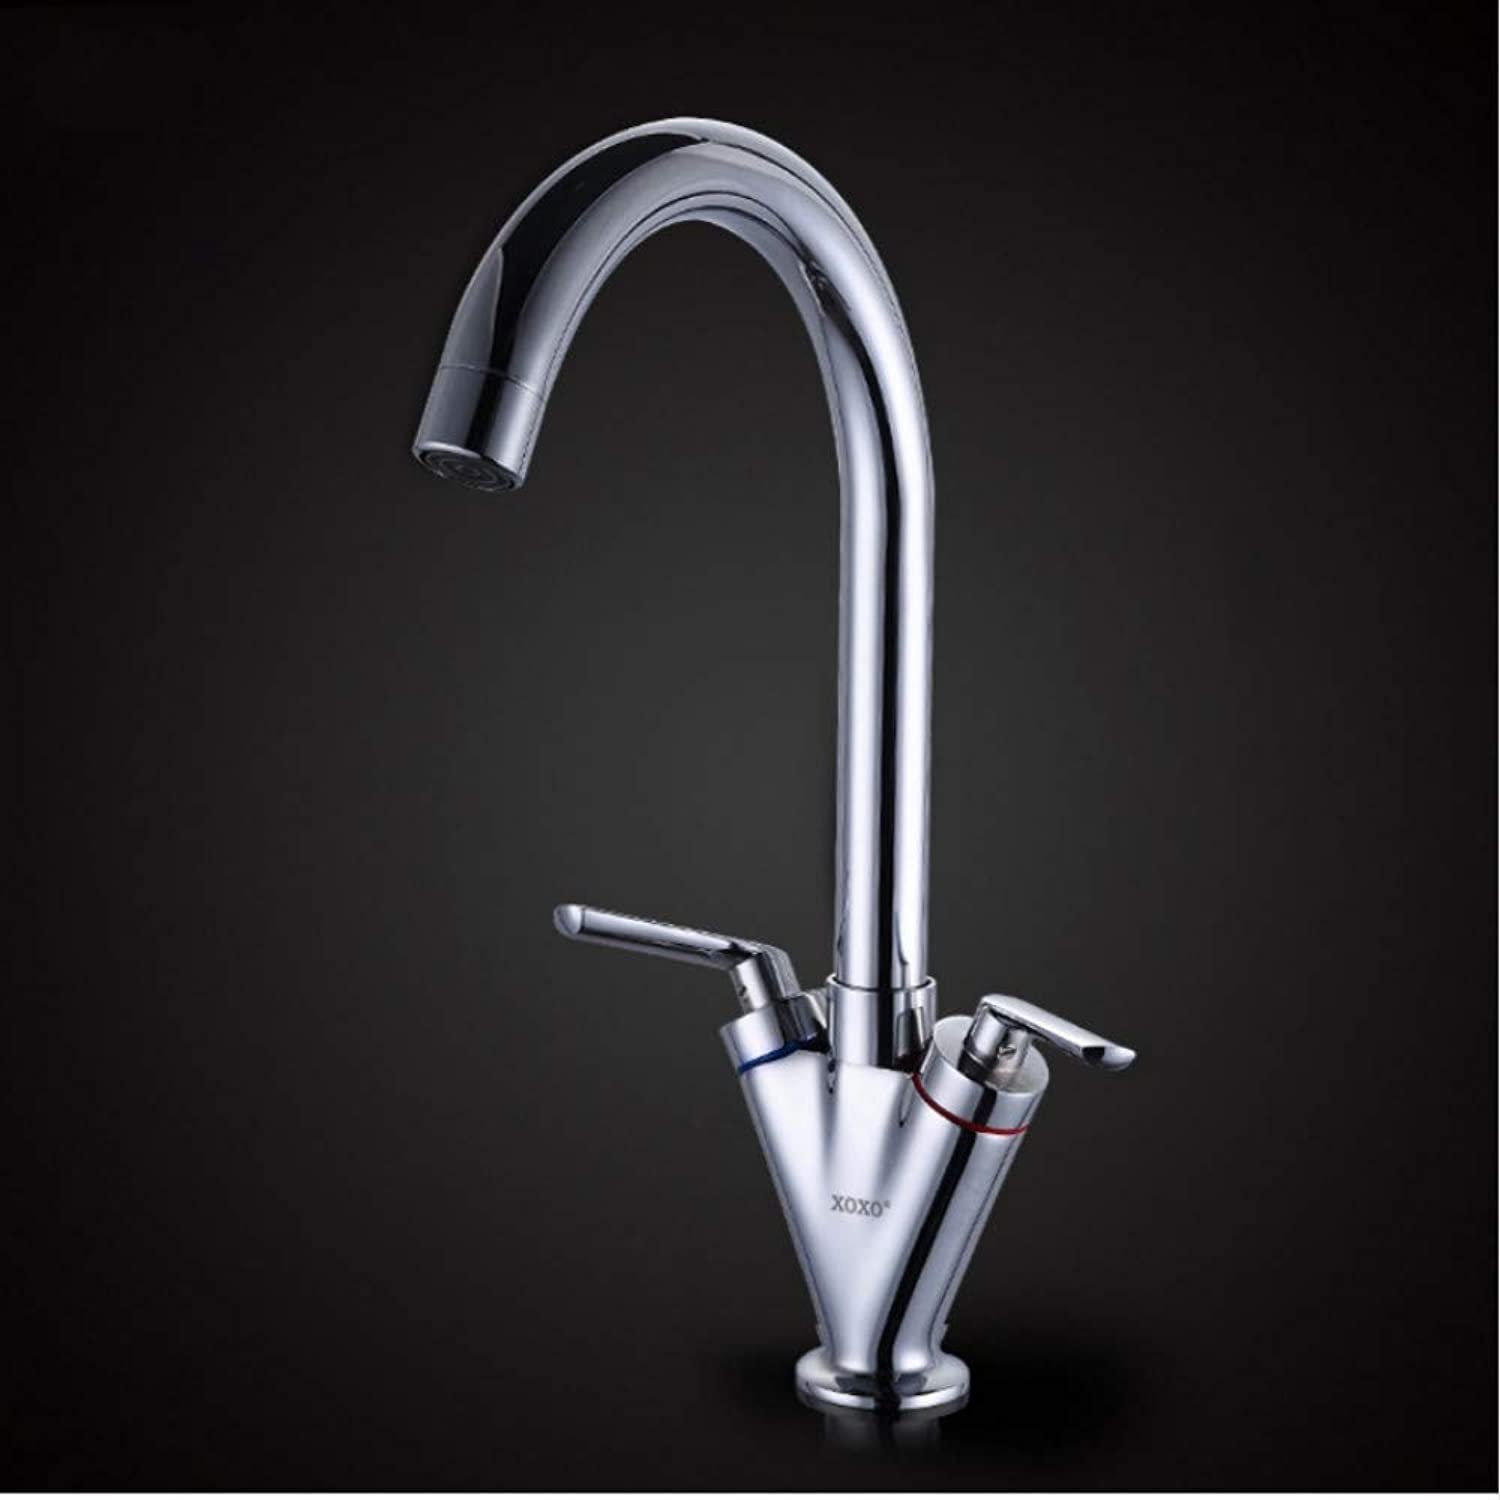 Lddpl Tap Hot Sell Double Handle Kitchen Sink Tap,Kitchen Mixer,Round Swivel Kitchen Faucets